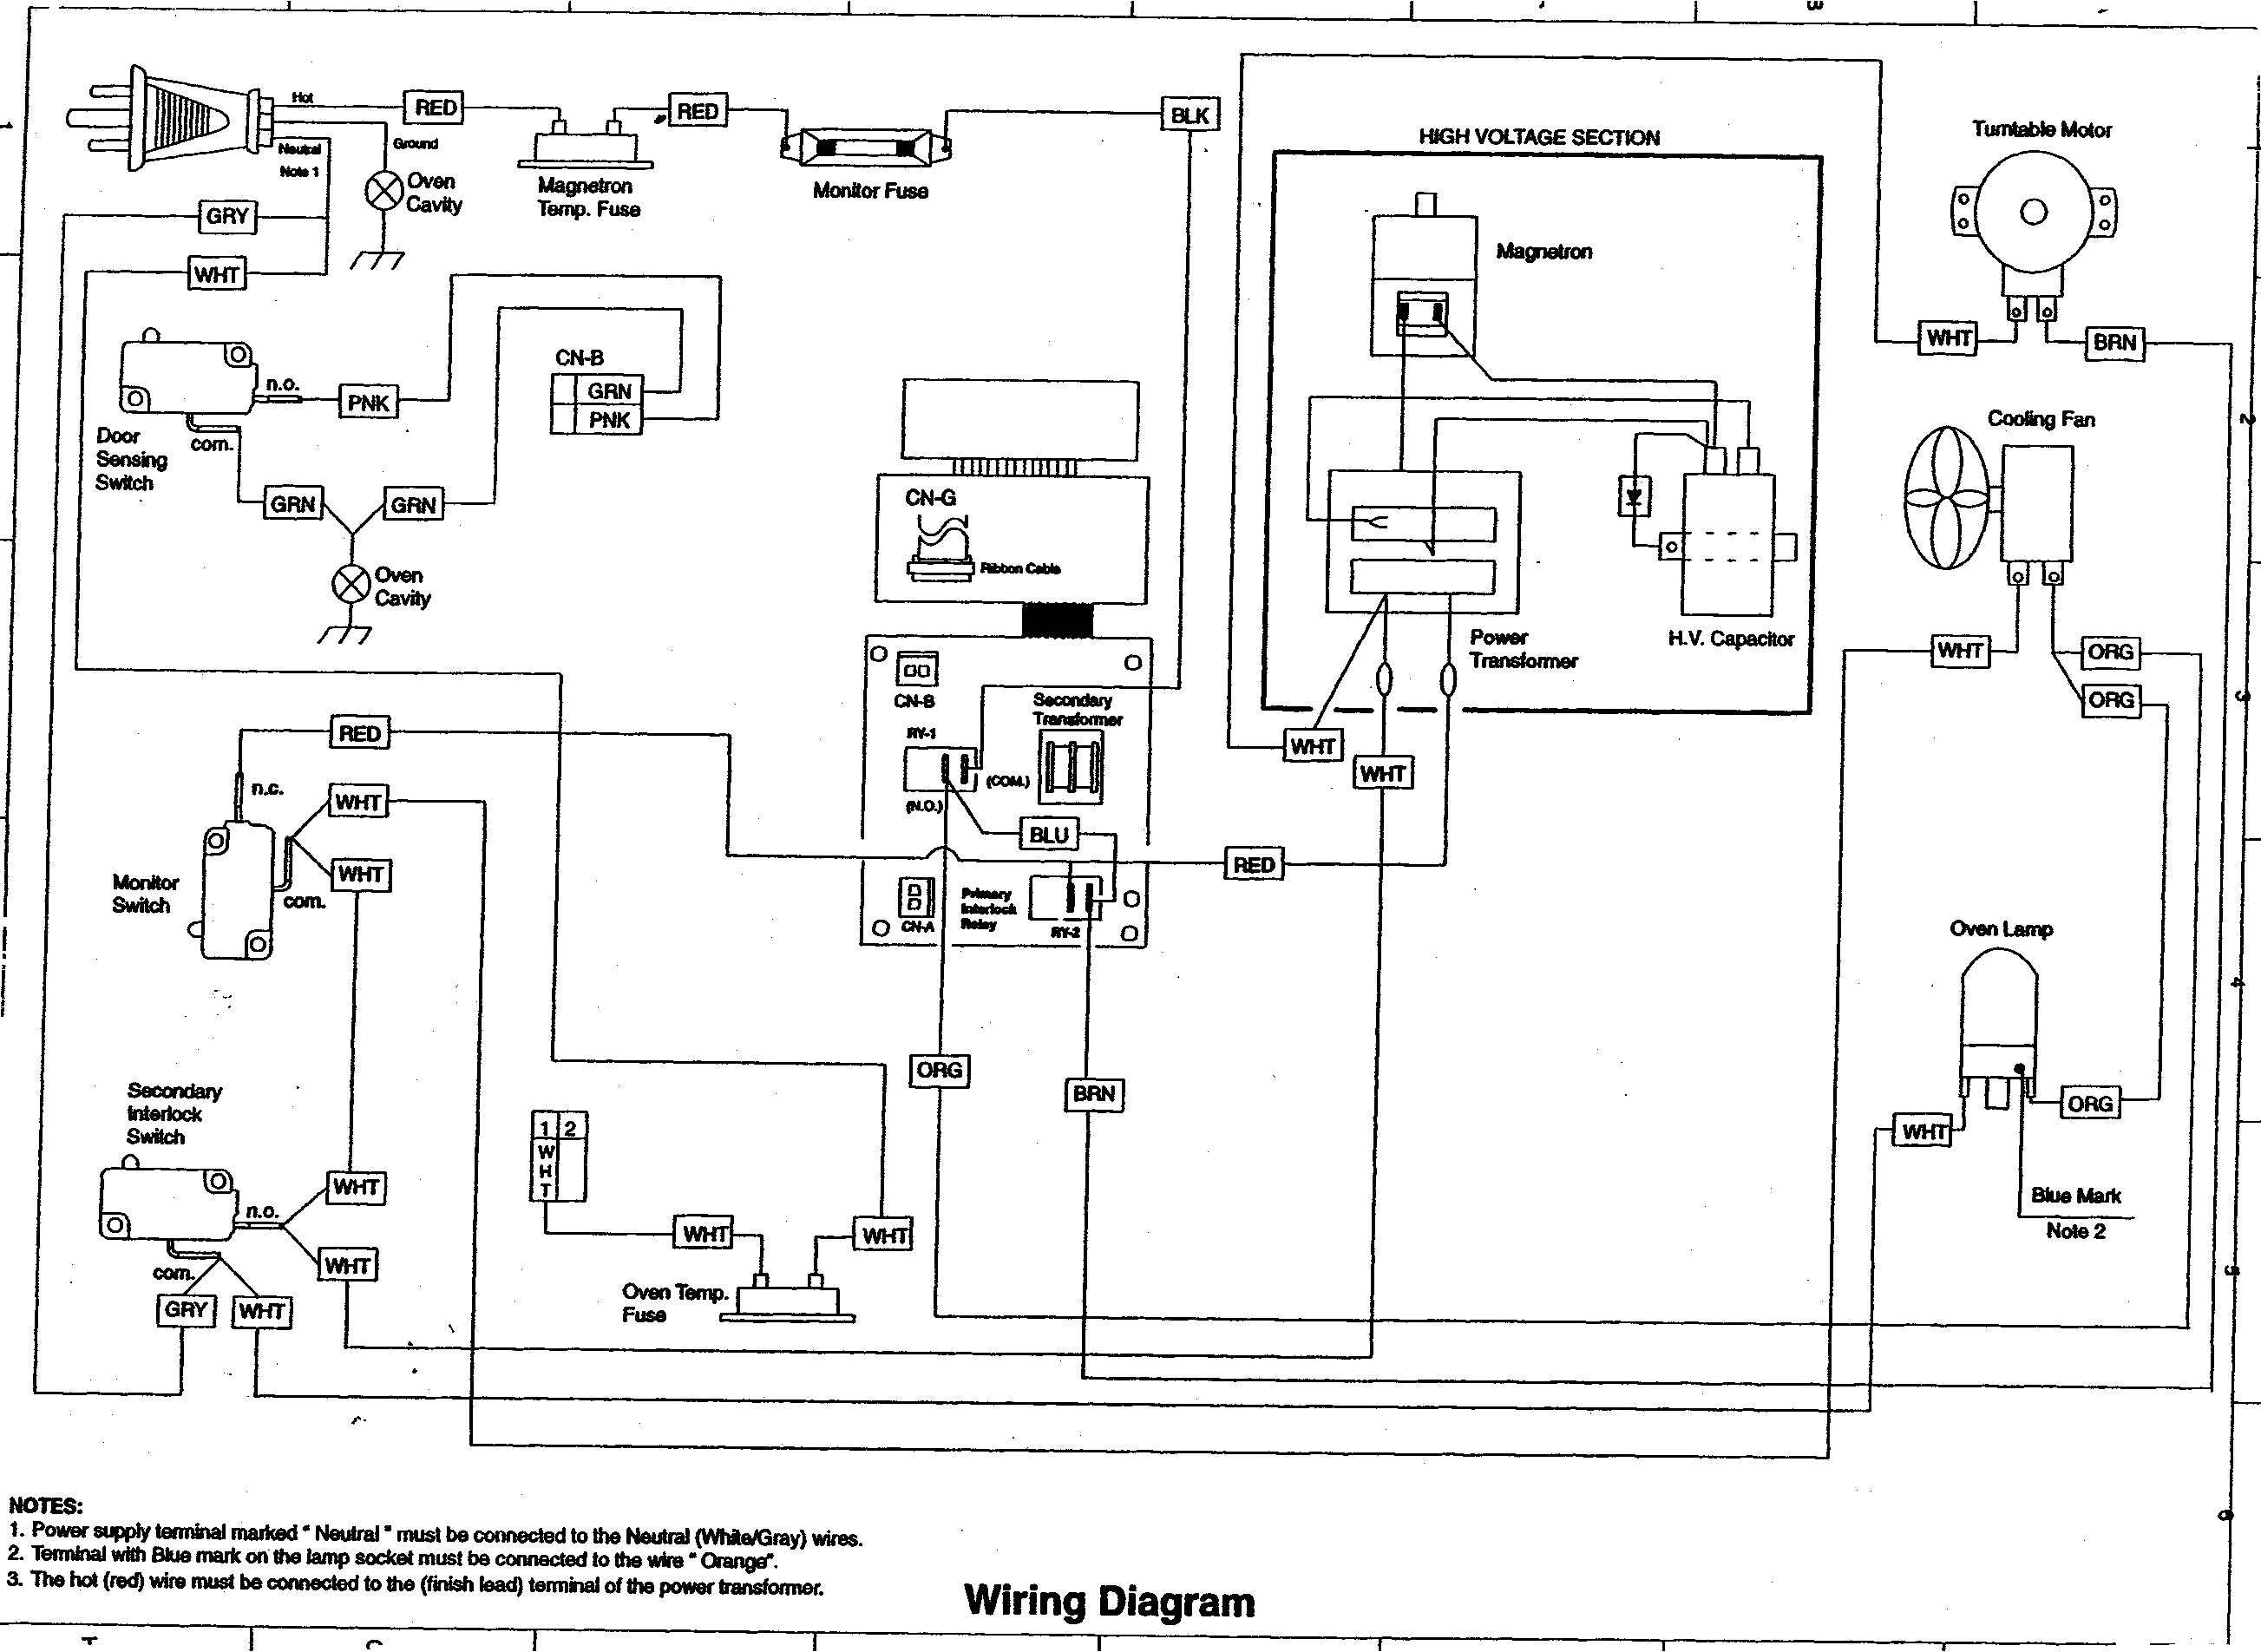 WIRING DIAGRAM Diagram & Parts List for Model R409CK Sharp